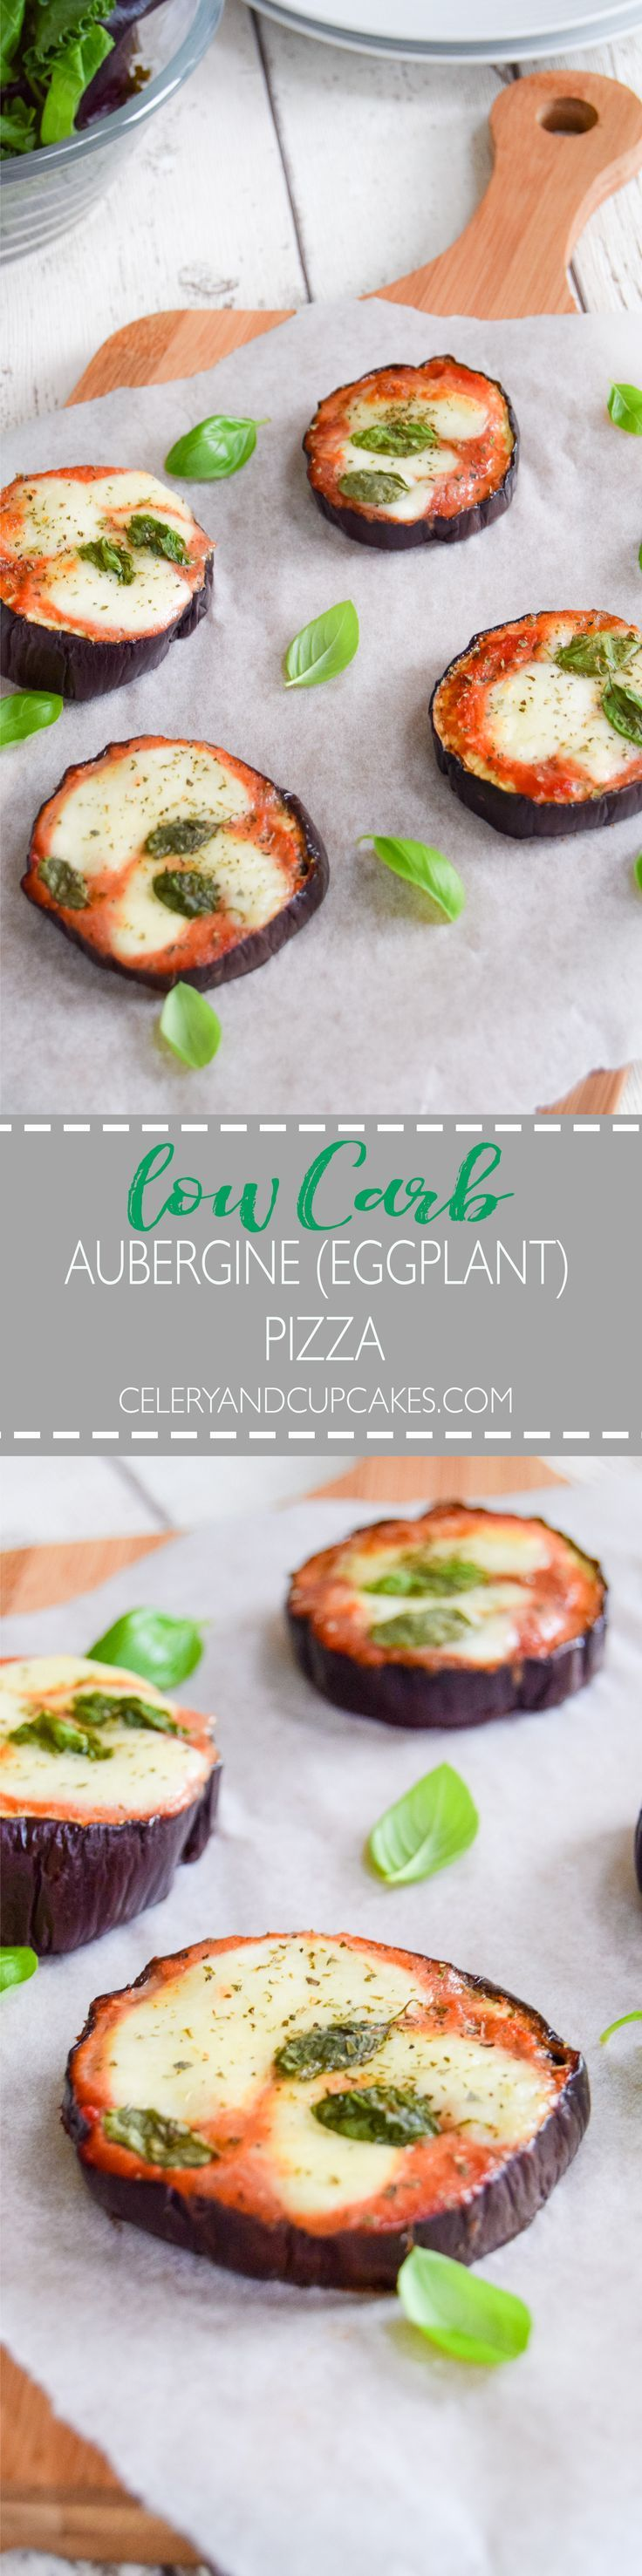 A low carb delicious pizza option for when you're looking for a healthier alternative to a traditional pizza crust.